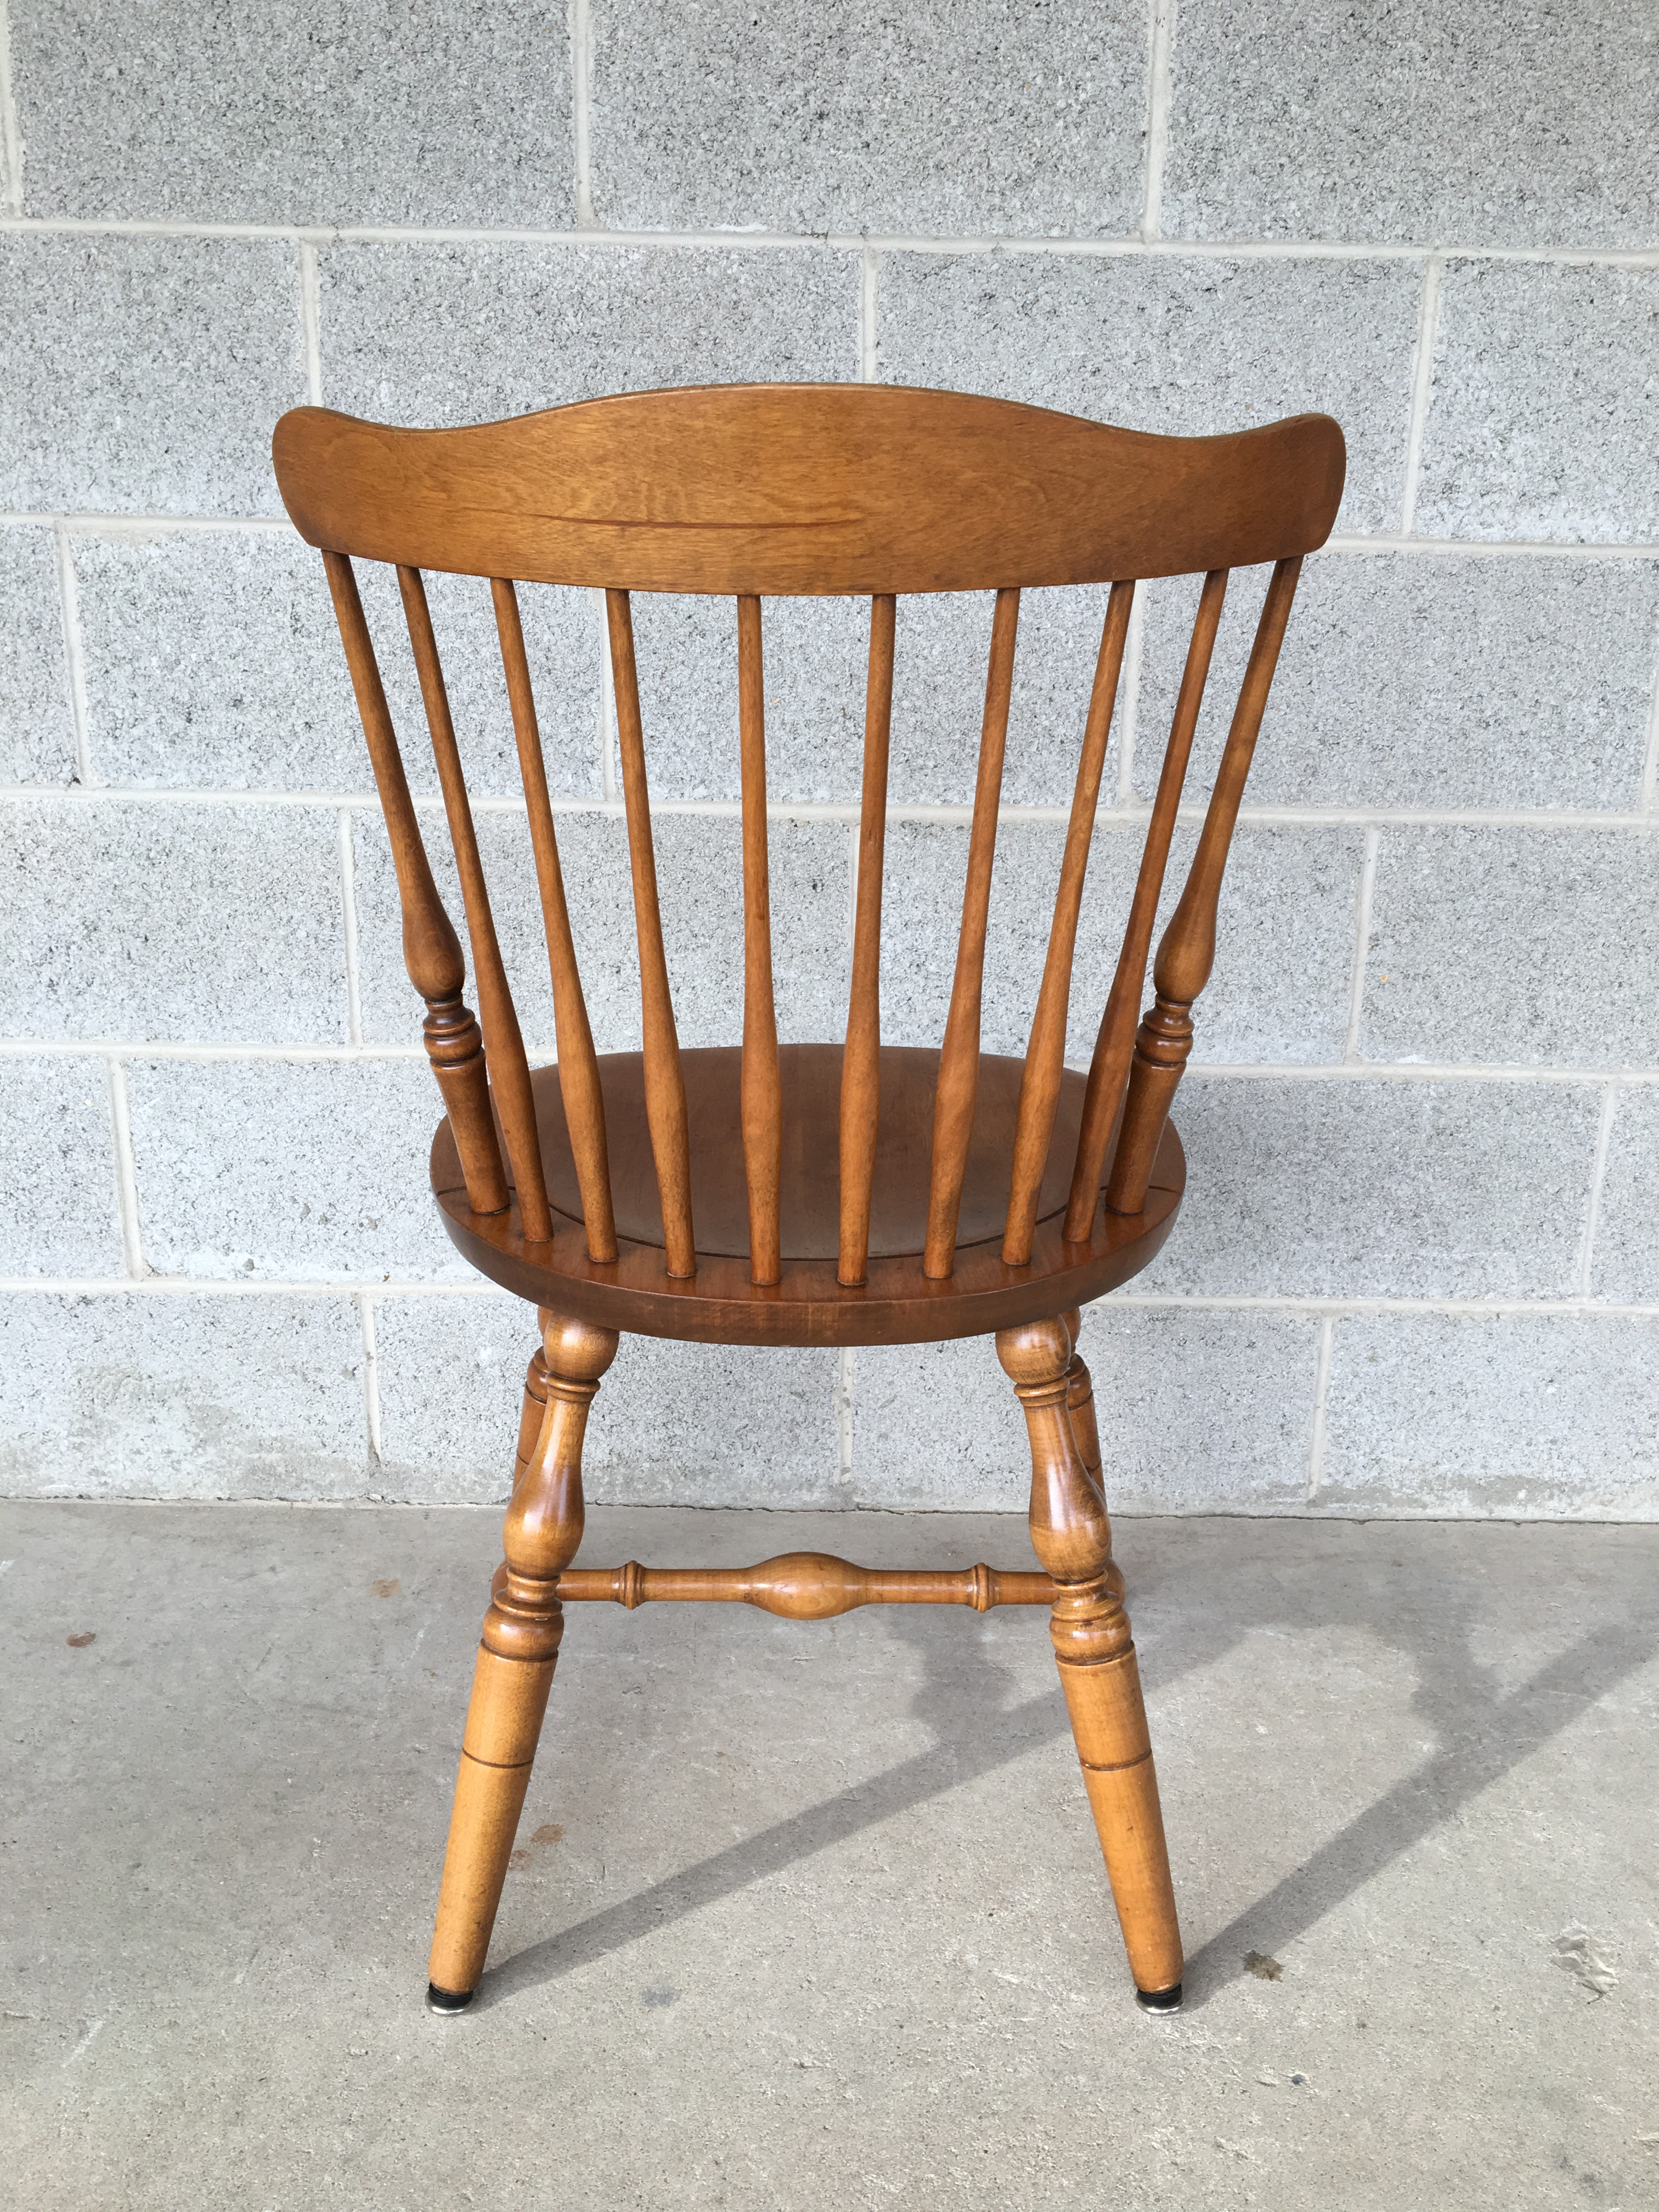 Wood S. Bent Bros. Windsor Governor Bradford Style Maple Chairs - Set of 4  sc 1 st  Chairish & S. Bent Bros. Windsor Governor Bradford Style Maple Chairs - Set of ...